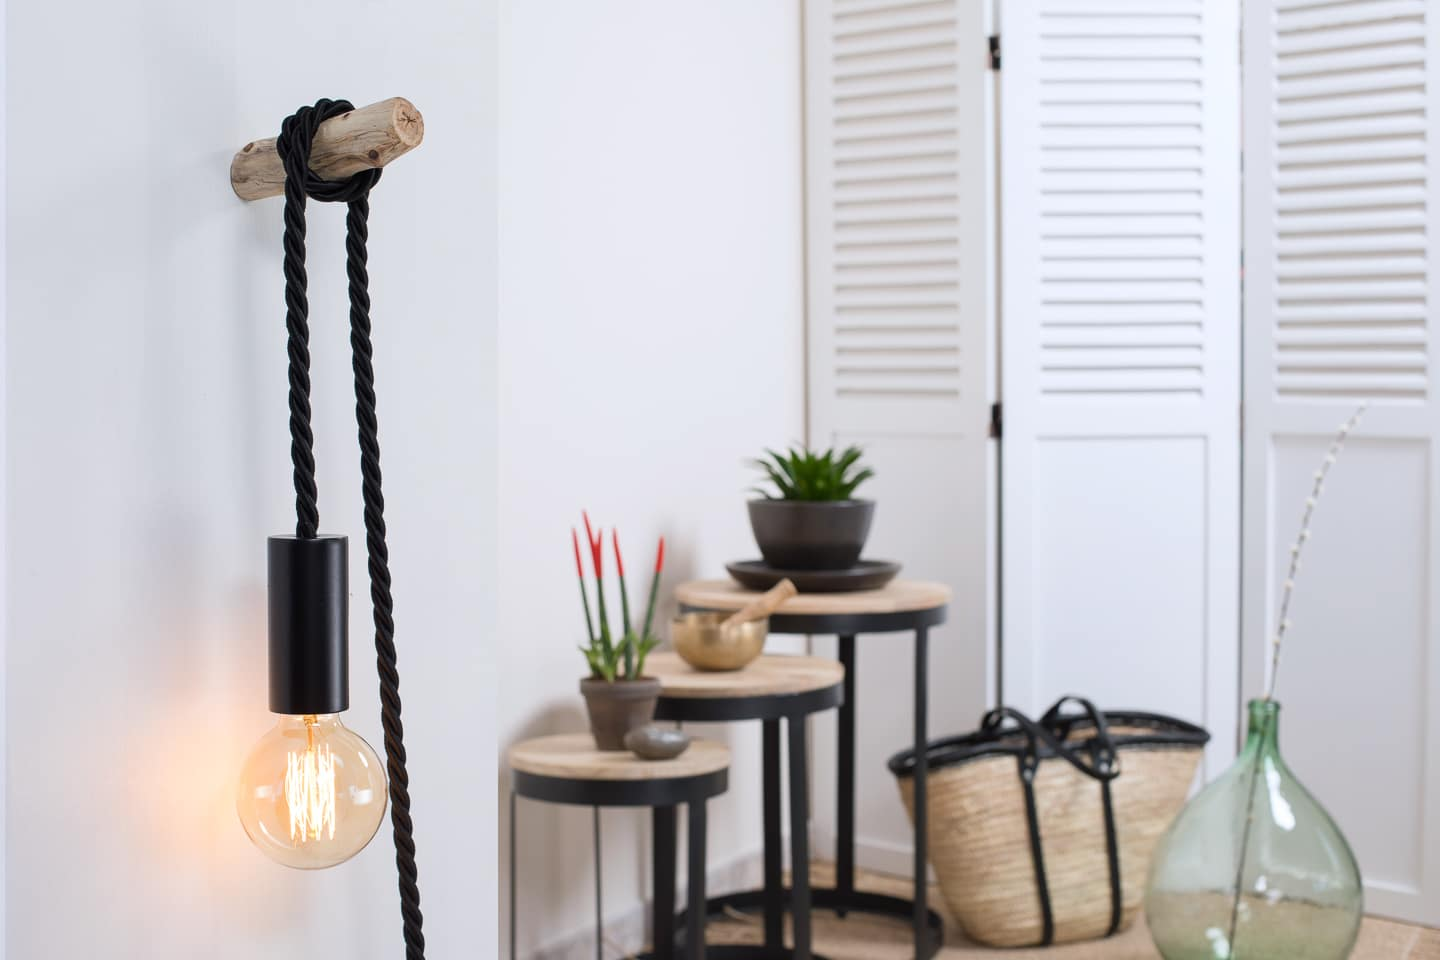 lampe baladeuse ambiance et nature cable noir ambiance nature. Black Bedroom Furniture Sets. Home Design Ideas